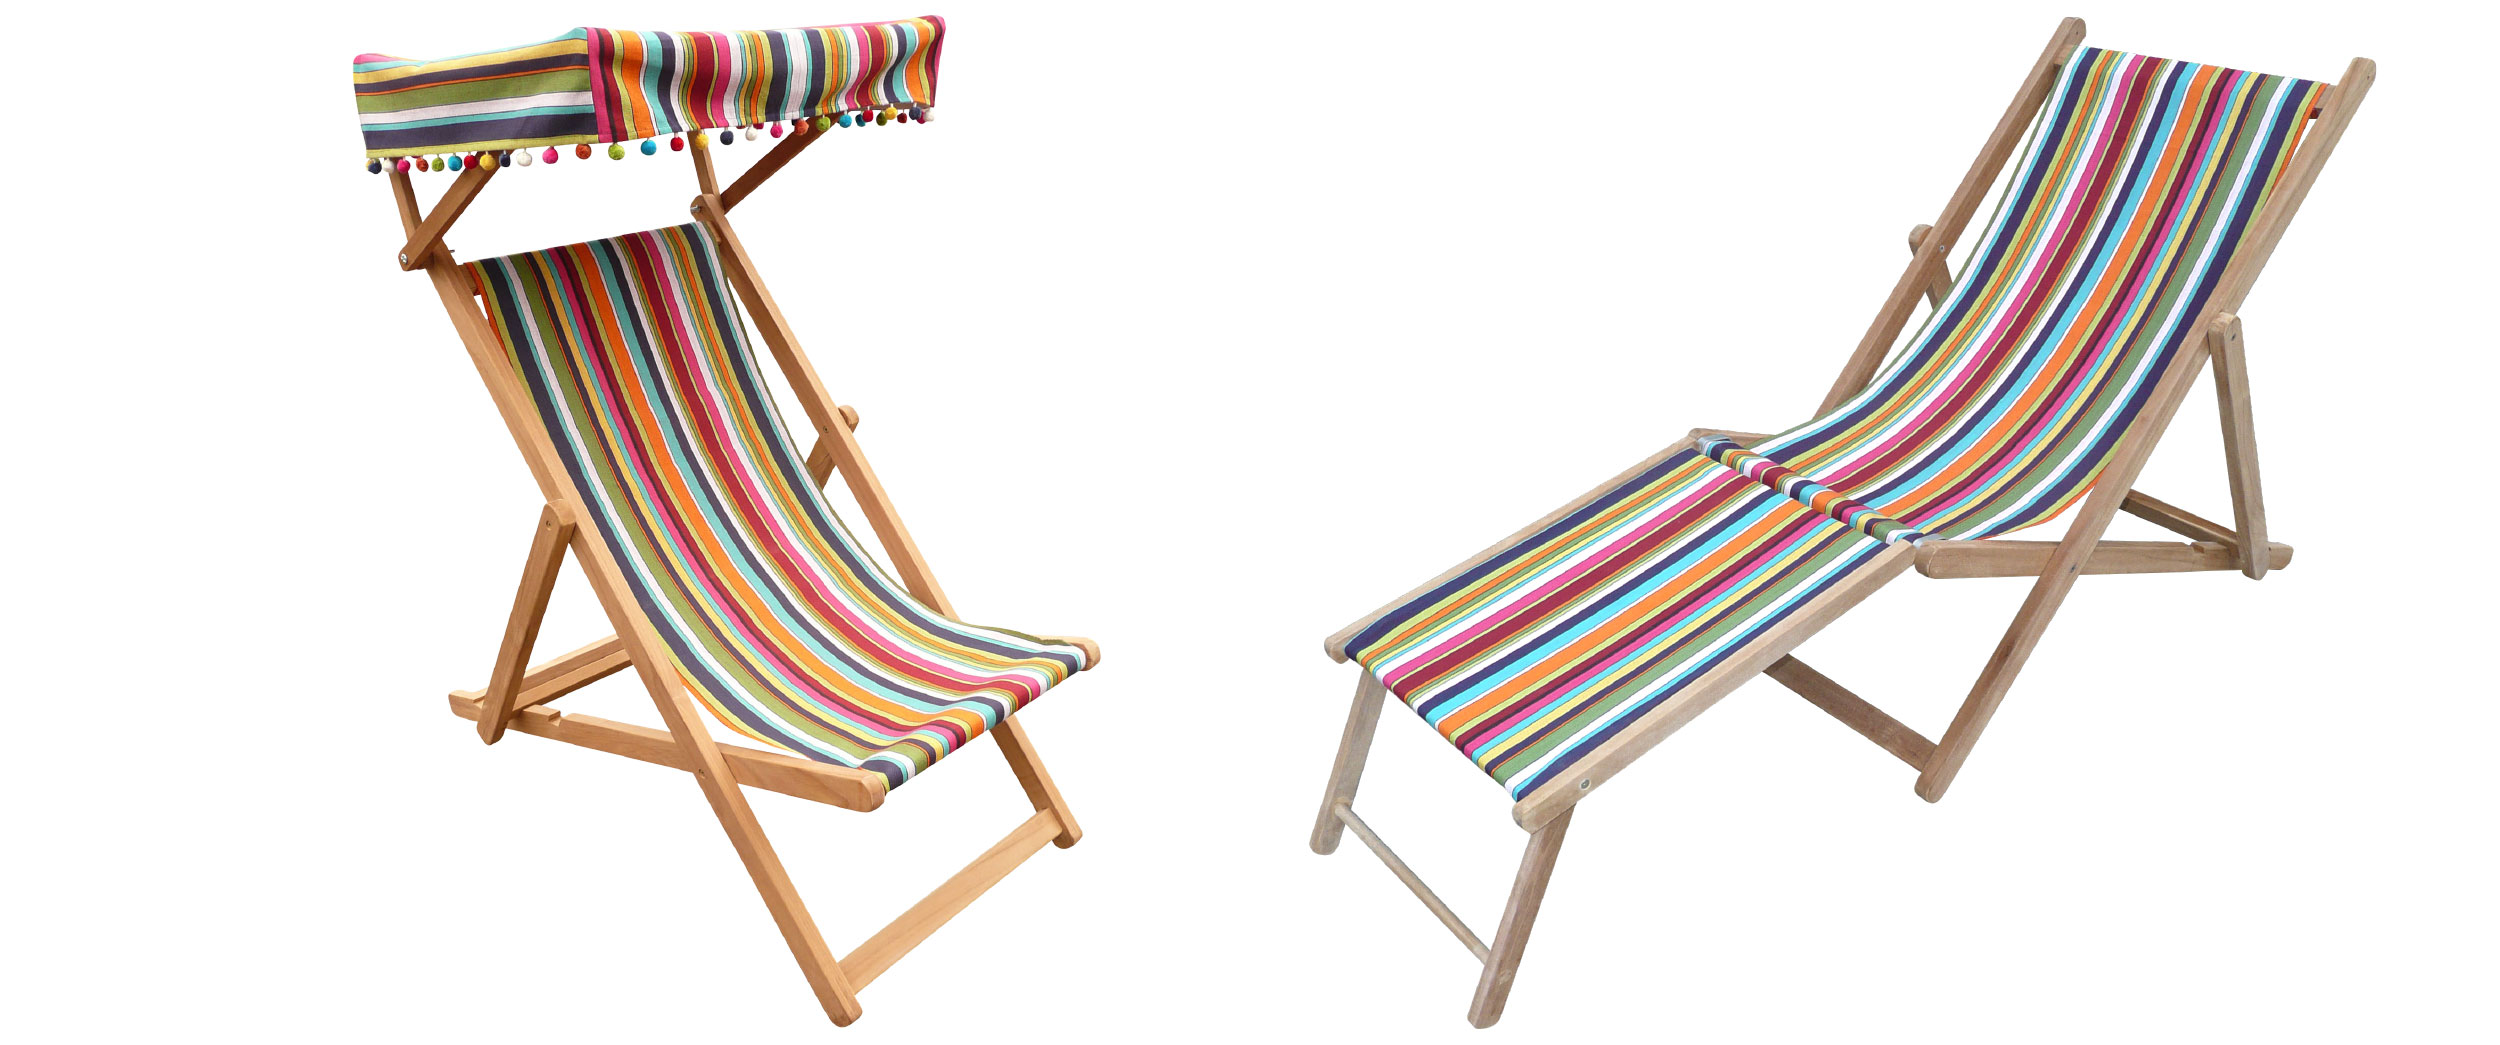 Teak Deck Chairs blue, red, black, yellow stripes